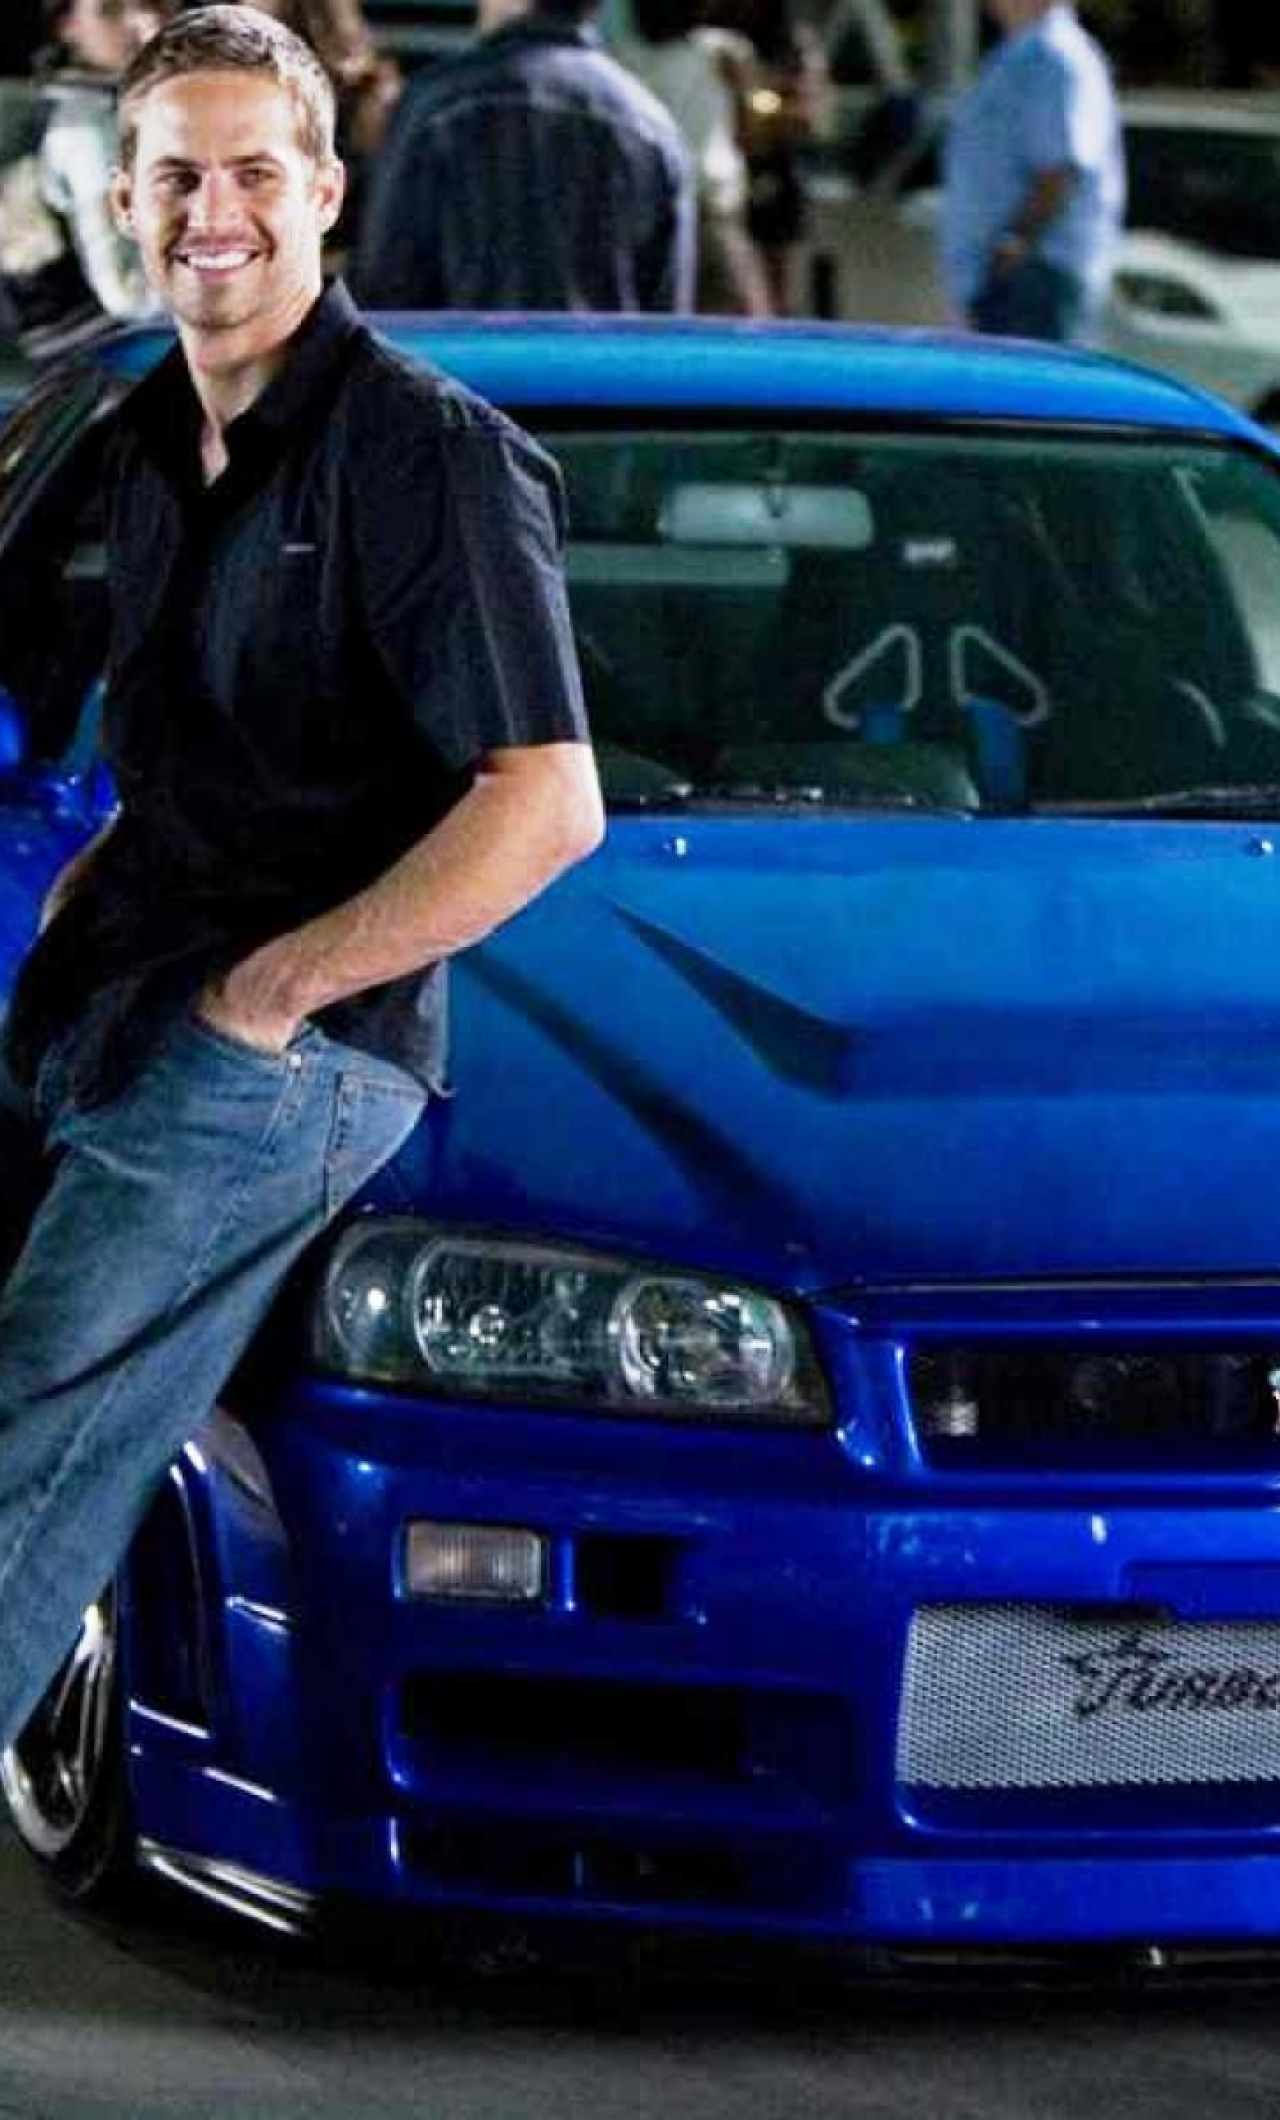 Fast & Furious 6 HD Wallpaper | Background Image ... |Fast And Furious 6 Paul Walker Wallpaper